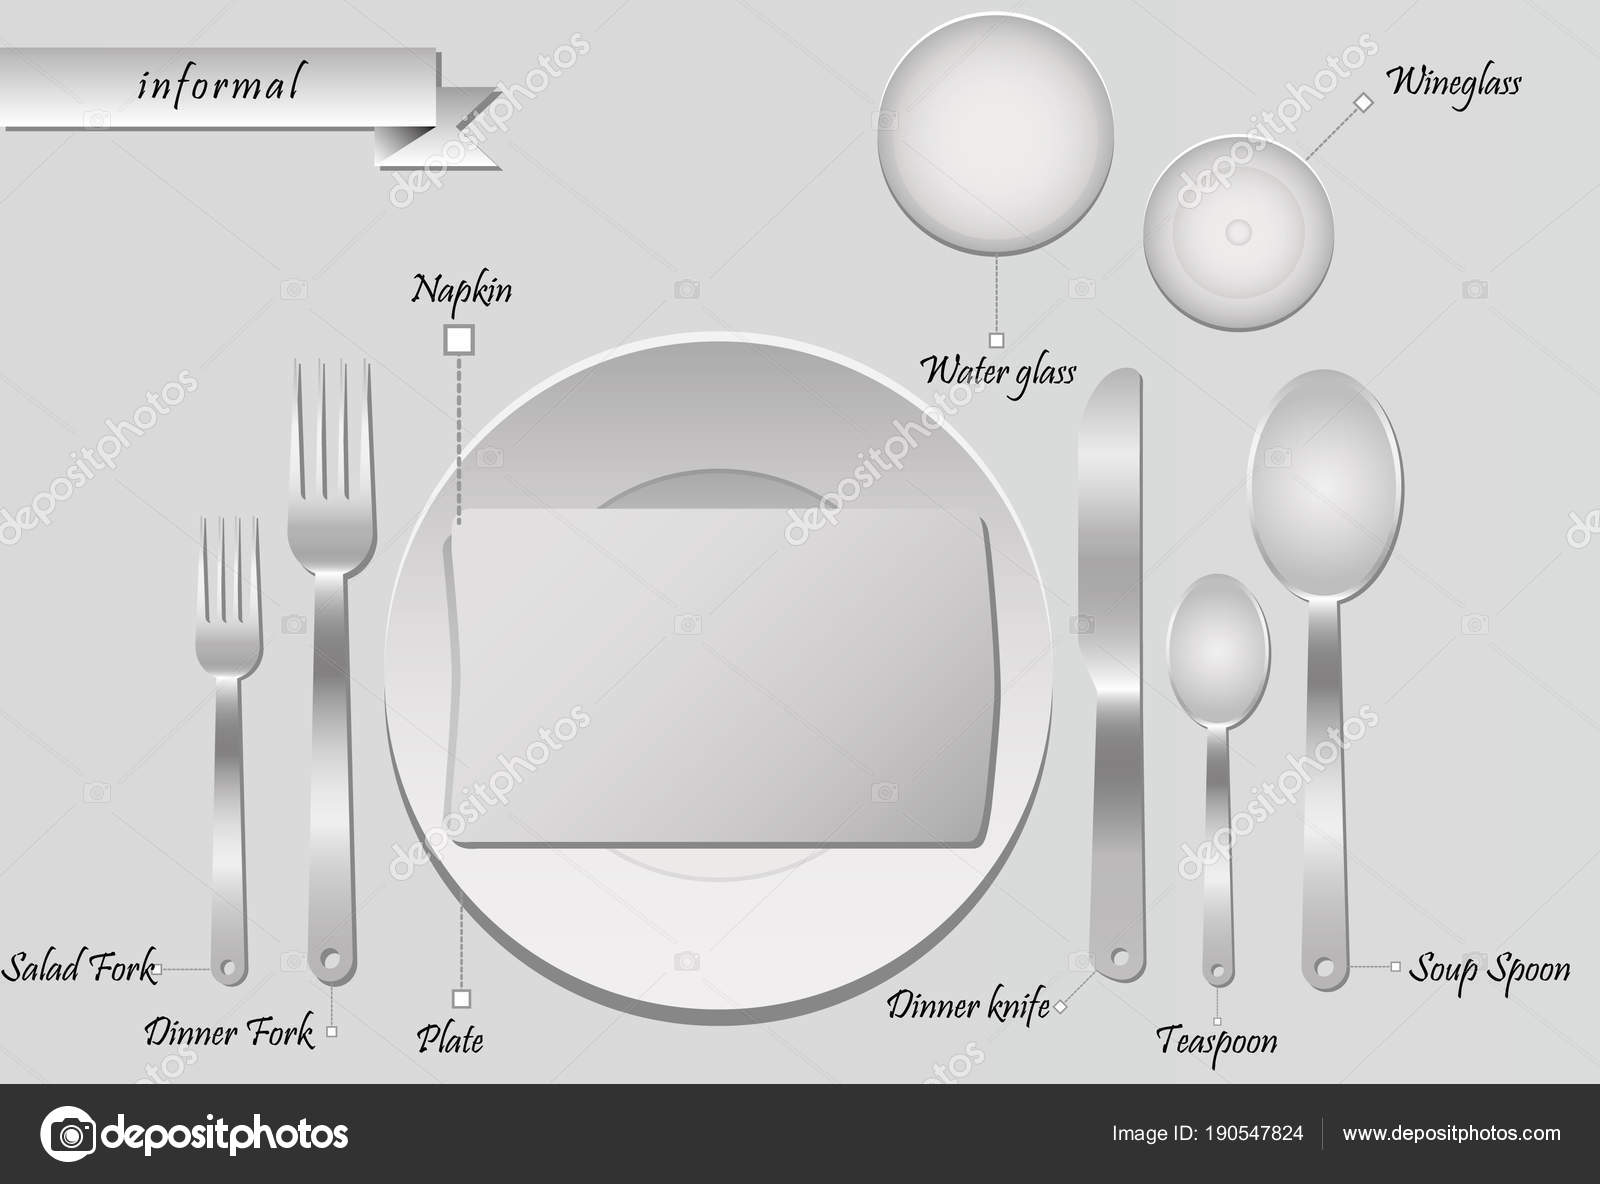 Plan Cutlery Table Grey Background Informal Table Setting U2014 Stock Vector